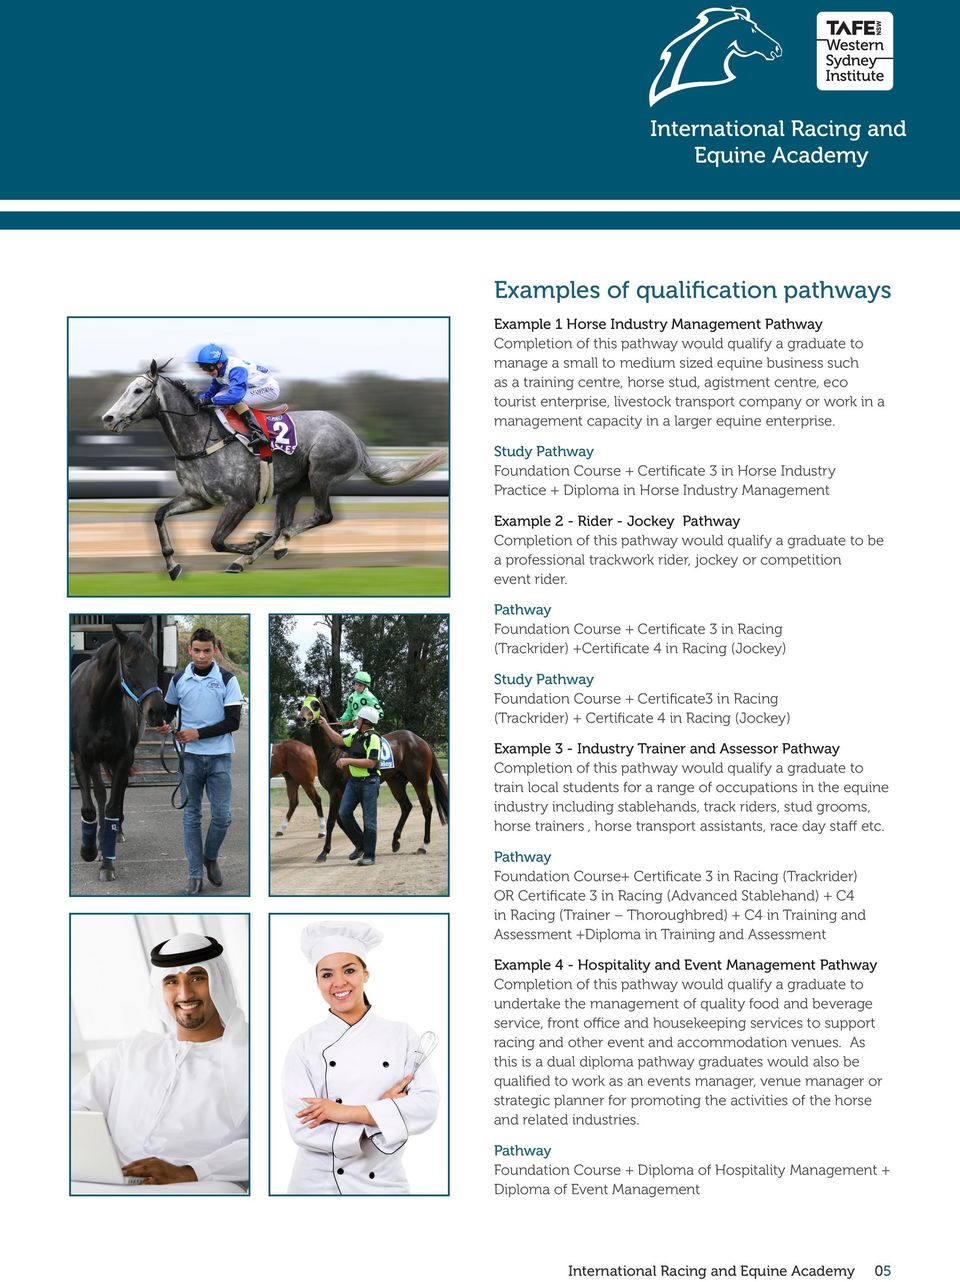 Study Pathway Foundation Course + Certificate 3 in Horse Industry Practice + Diploma in Horse Industry Management Example 2 - Rider - Jockey Pathway Completion of this pathway would qualify a